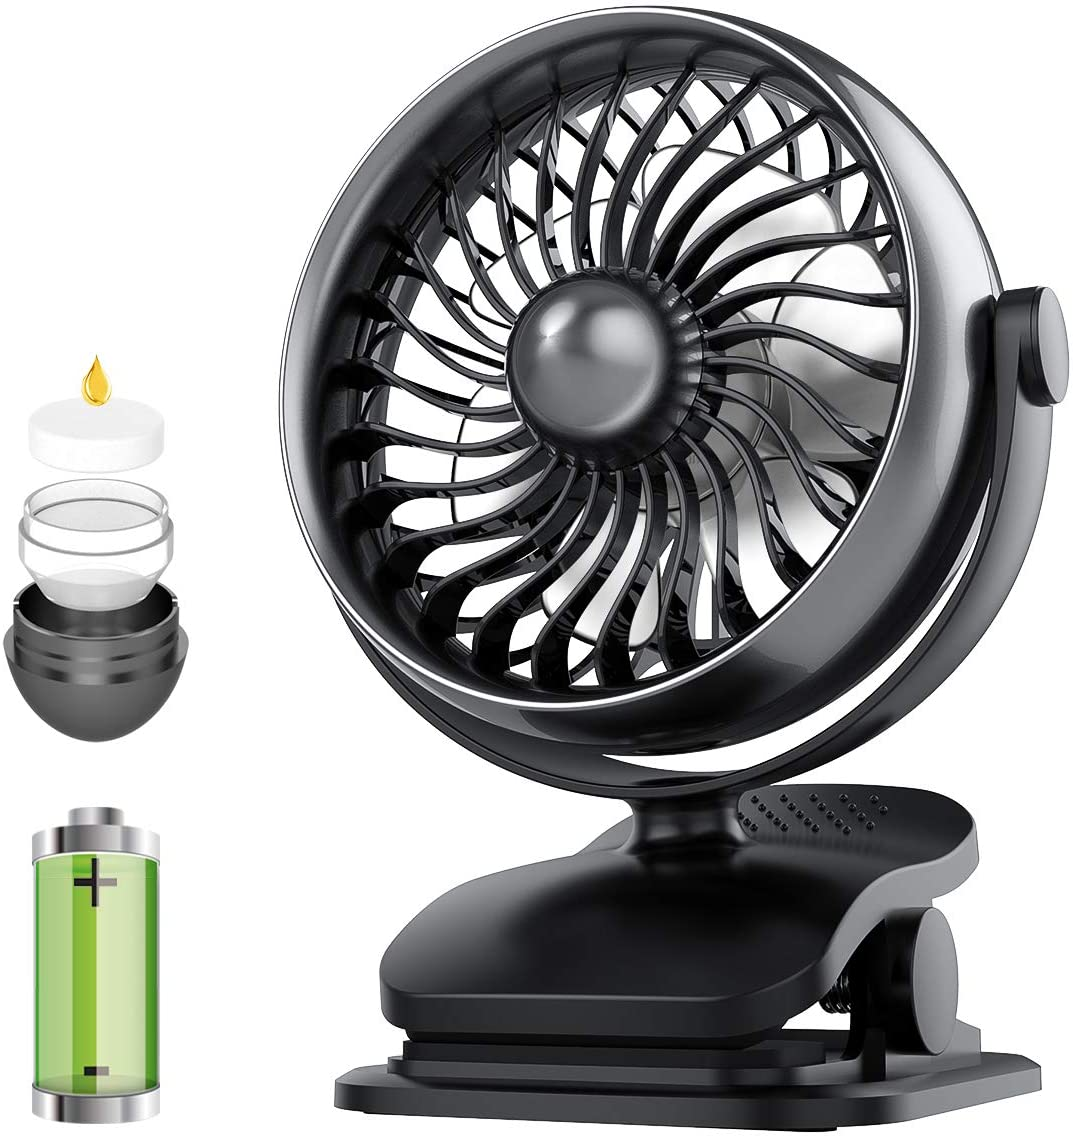 Battery Operated Clip on Fan, USB or Battery Powered Small Fan with Aroma Diffuser Function, 360 Rotatable Strong Airflow with 4 Speeds, Personal Fan for Baby Stroller, Office, Outdoor Activity